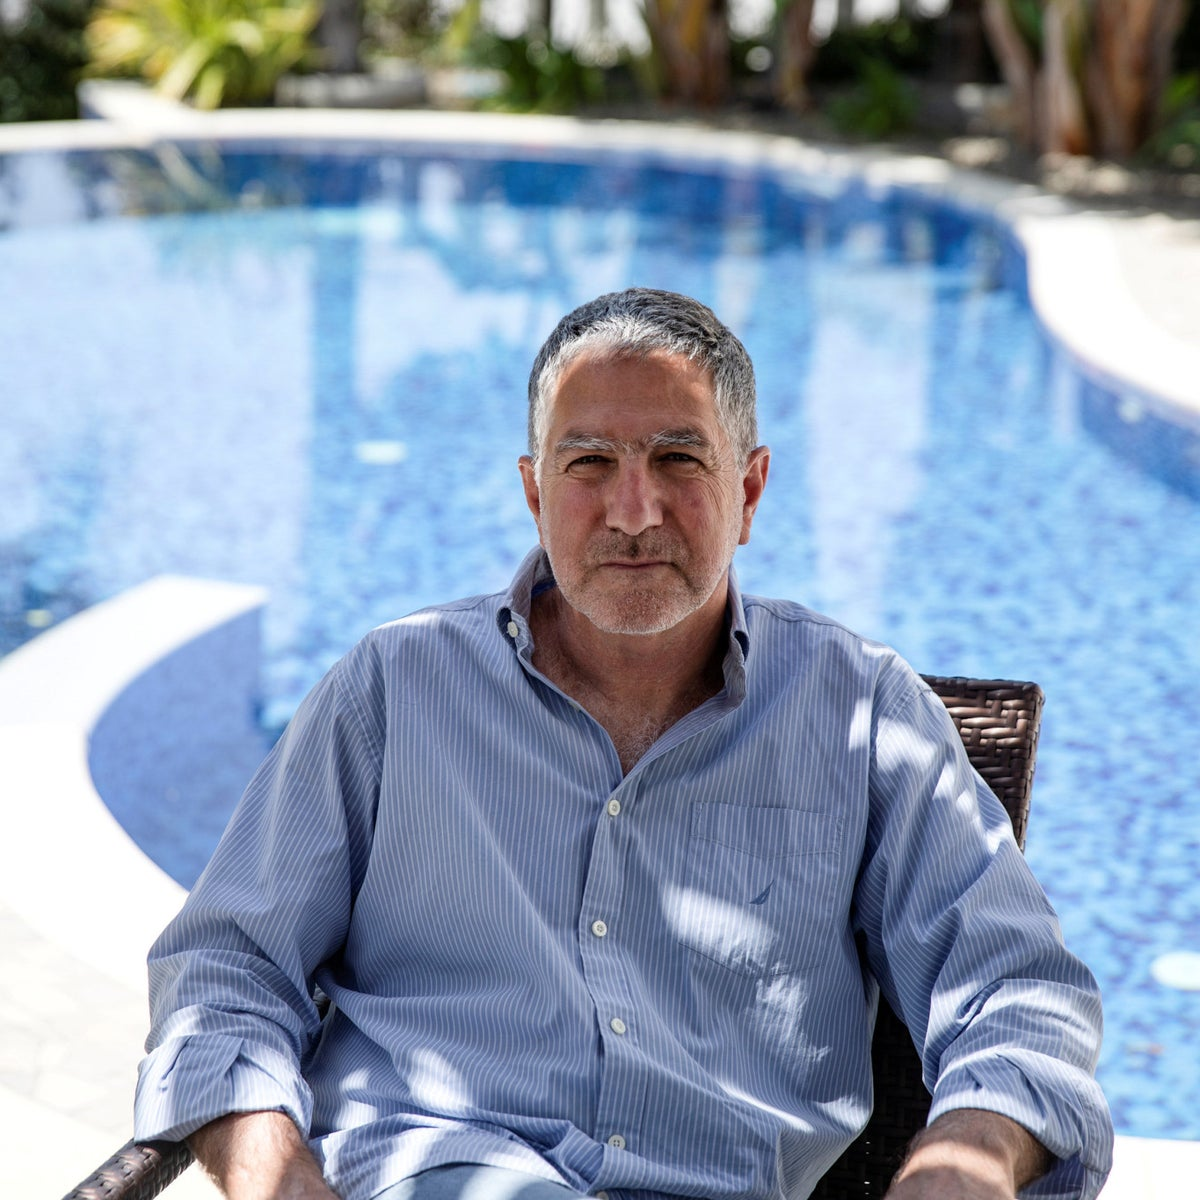 Tal Dilian sits next to his pool in his Limassol home. He was photographed by Reuters as part of a story about using spytech to help track the spread of the coronavirus